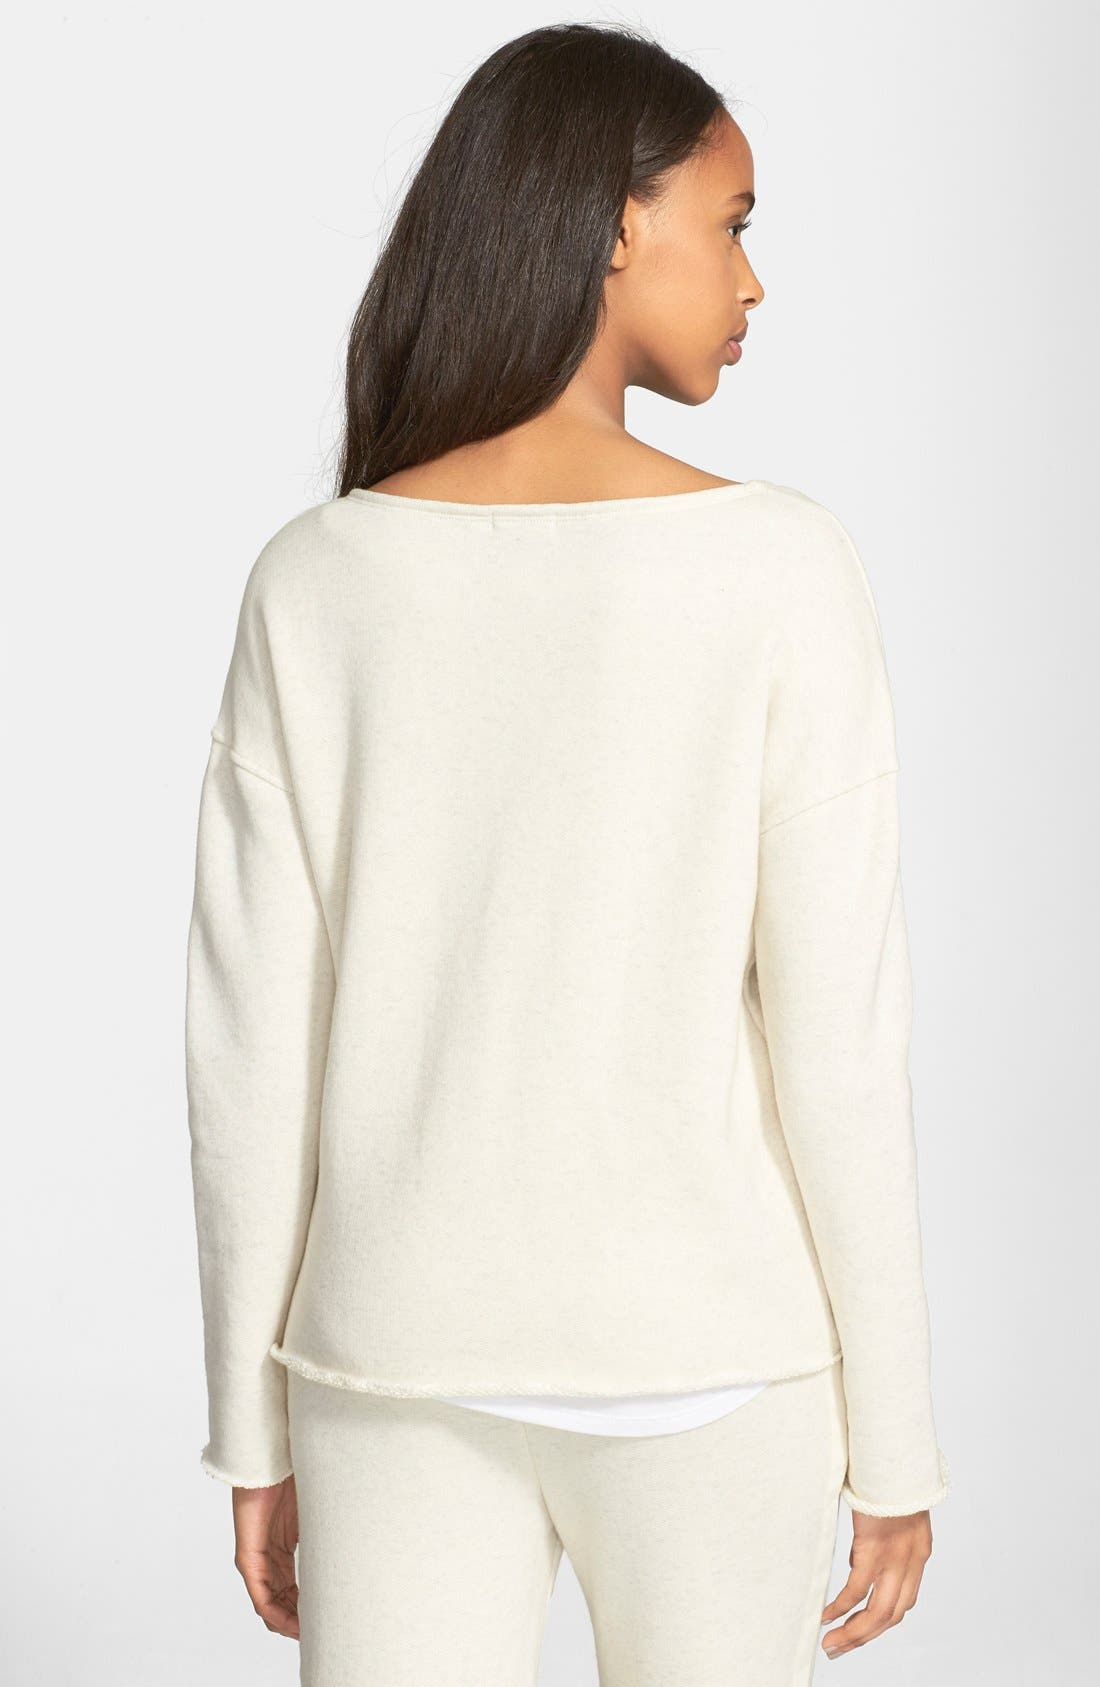 Brushed French Terry Sweatshirt,                             Alternate thumbnail 4, color,                             240